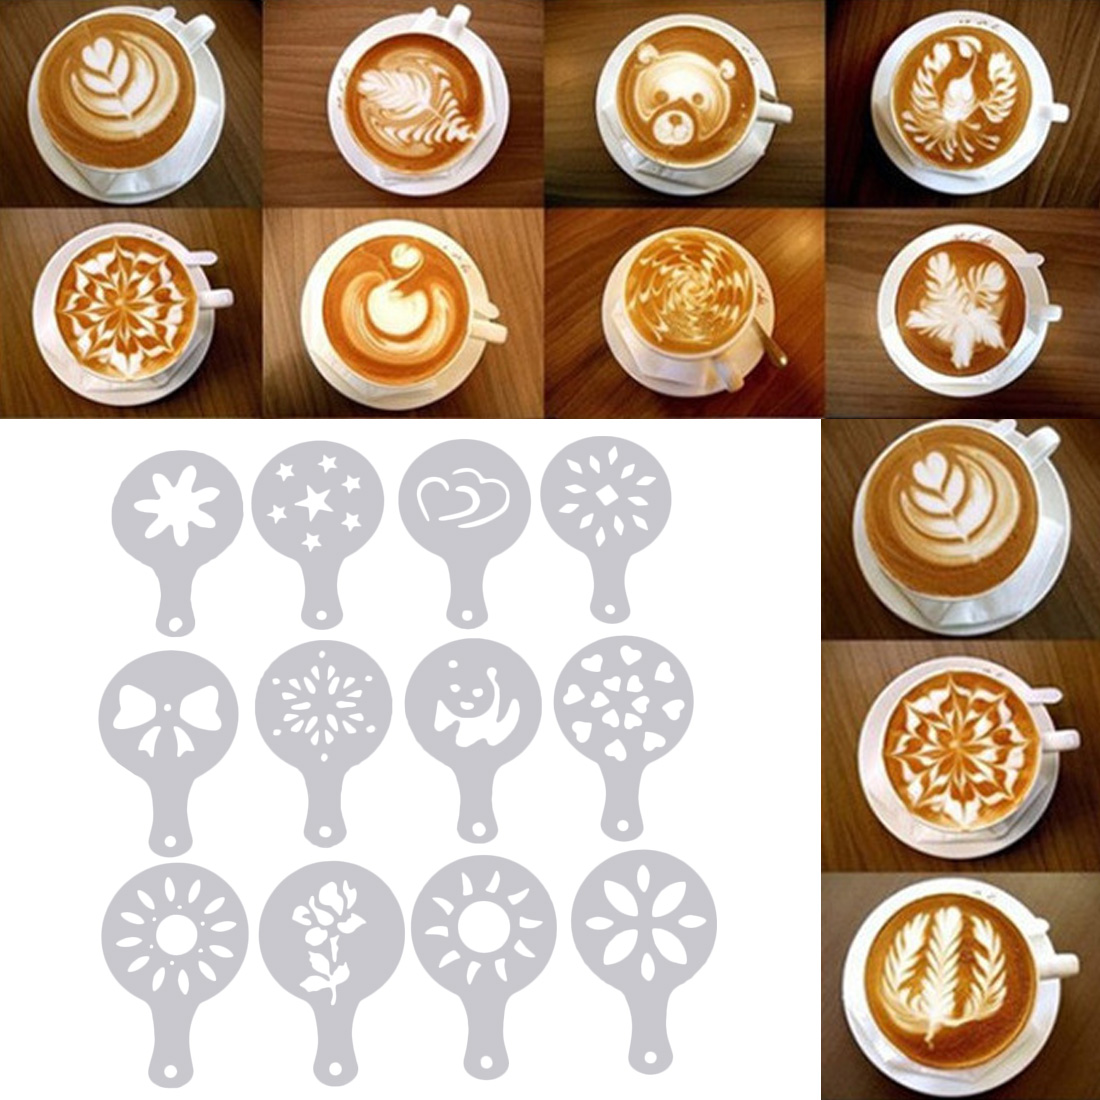 12pcs/set  Art Coffee Stencils Latte Cappuccino Barista Cupid Pattern  Cake Duster Templates Coffee Tools Accessories